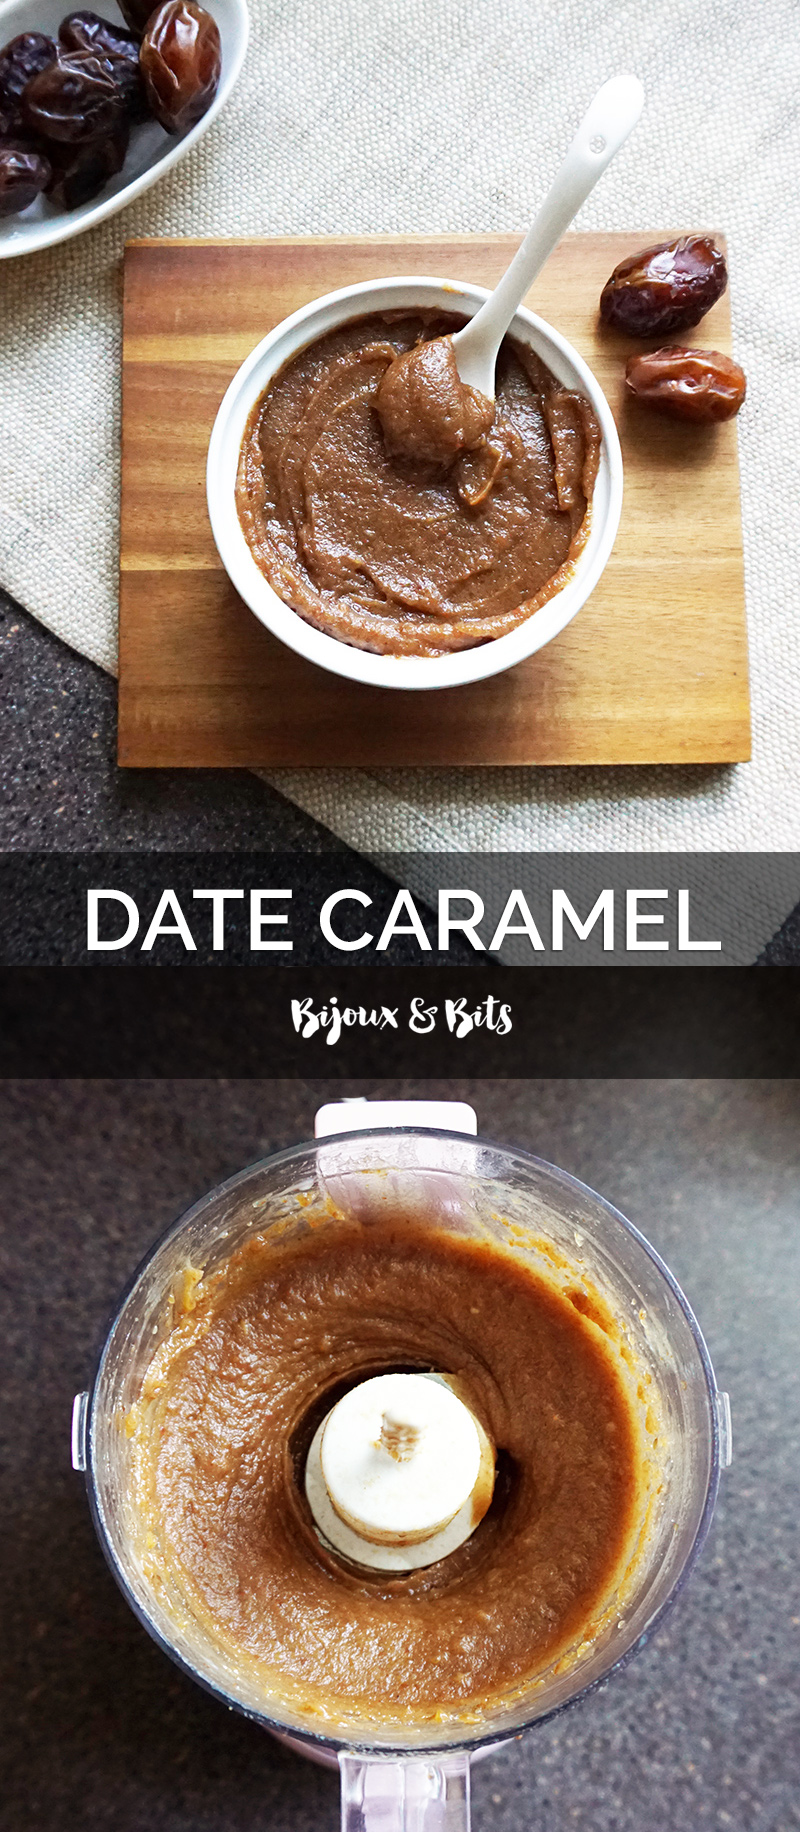 Salted date caramel recipe from @bijouxandbits